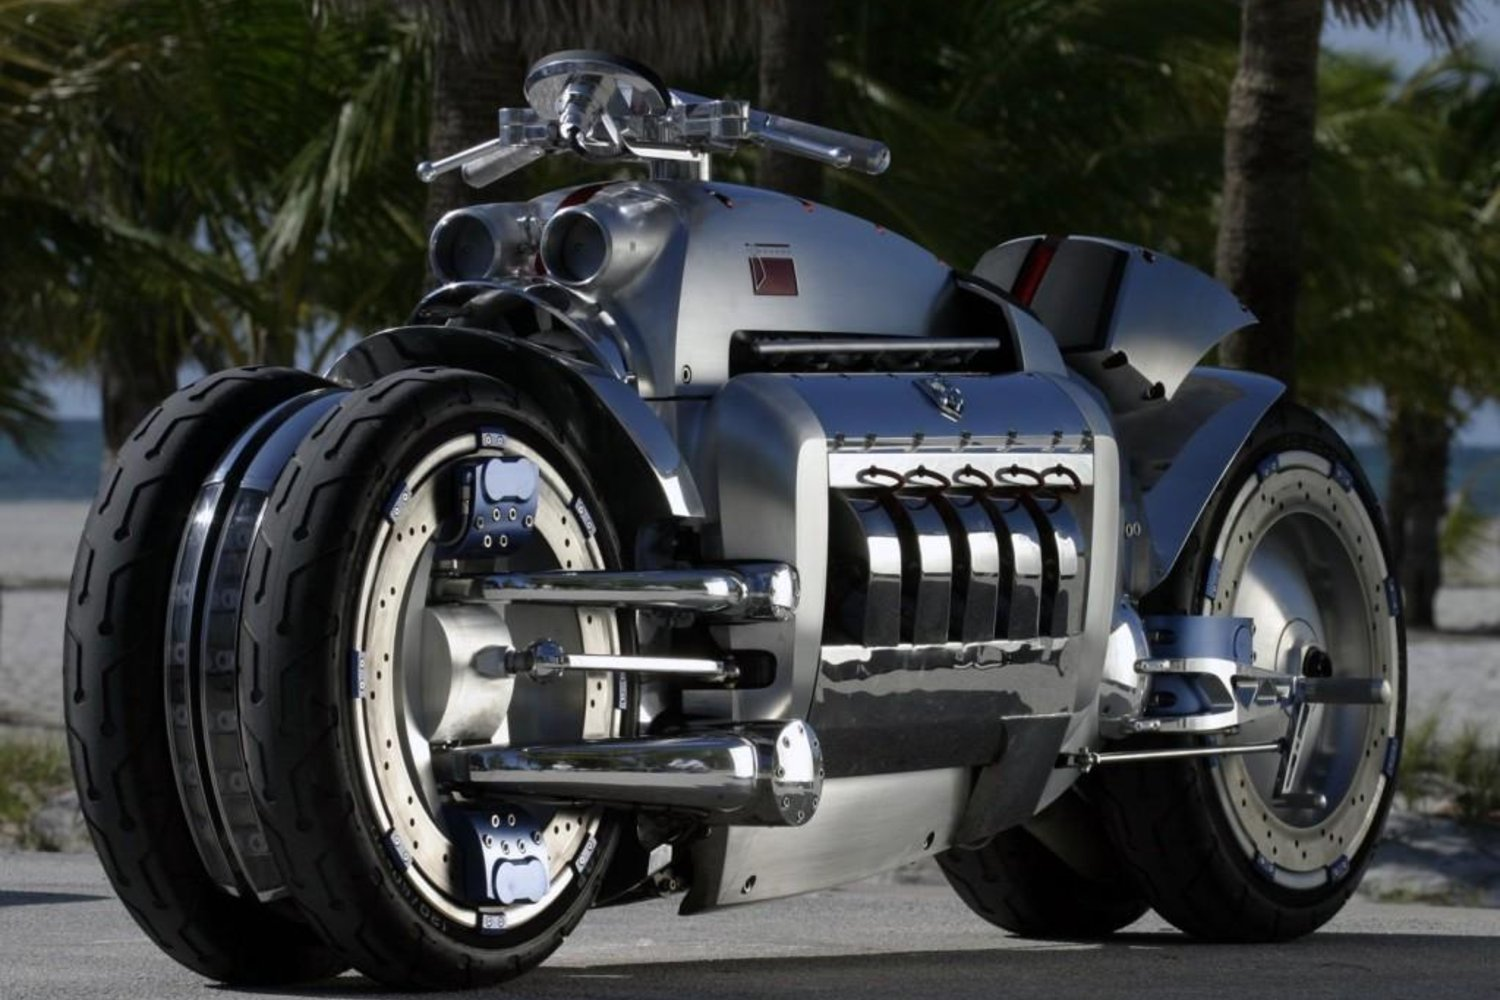 dodge-tomahawk-v10-superbike-550000_expensive-motorcycles